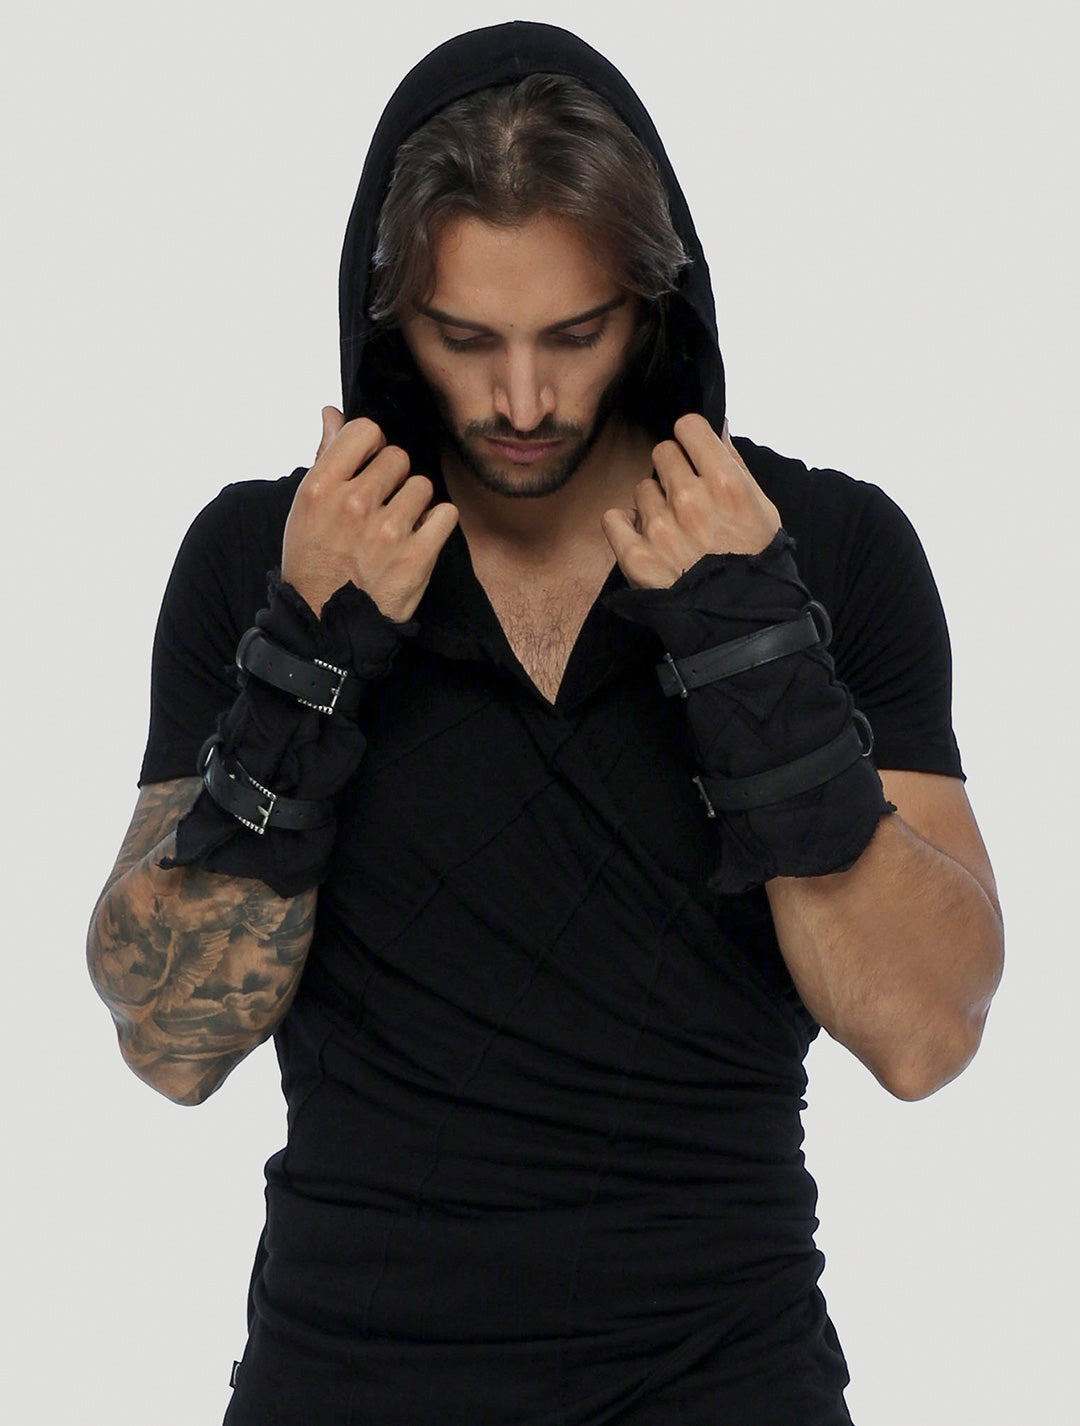 Assassin Vmix Wristband